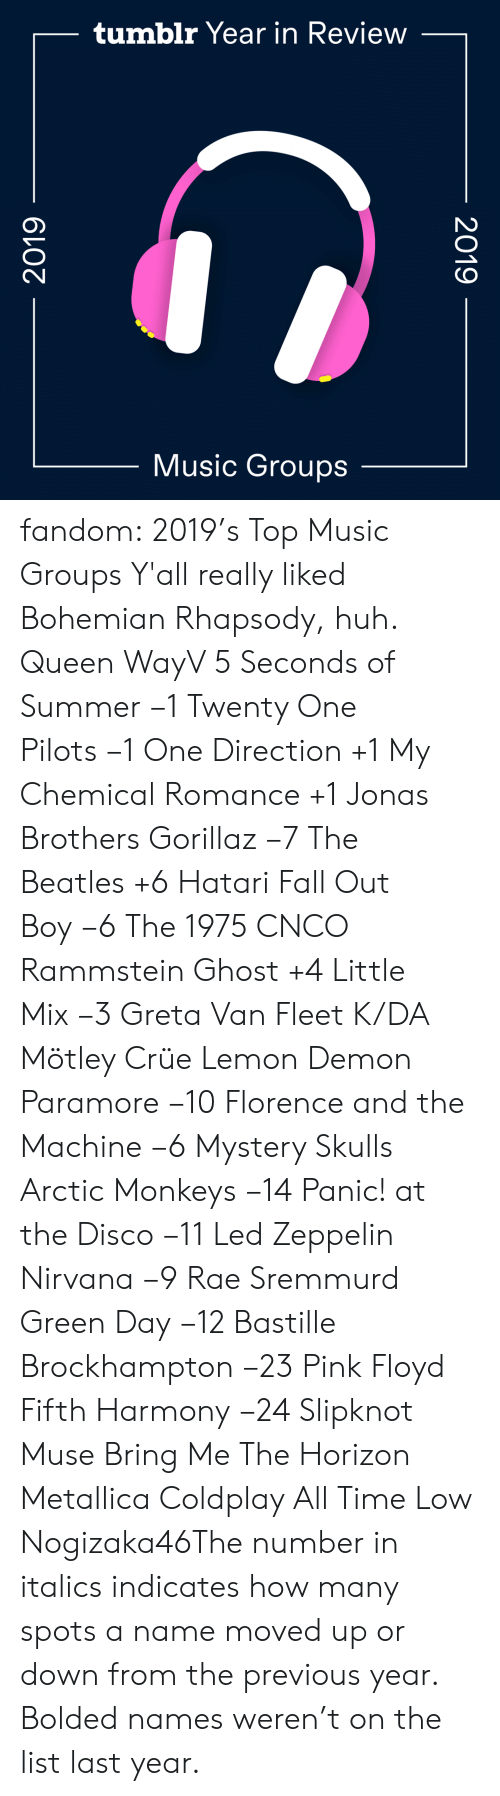 Summer: tumblr Year in Review  Music Groups  2019  2019 fandom:  2019's Top Music Groups  Y'all really liked Bohemian Rhapsody, huh.  Queen  WayV  5 Seconds of Summer −1  Twenty One Pilots −1  One Direction +1  My Chemical Romance +1  Jonas Brothers  Gorillaz −7  The Beatles +6  Hatari  Fall Out Boy −6  The 1975  CNCO  Rammstein  Ghost +4  Little Mix −3  Greta Van Fleet  K/DA  Mötley Crüe  Lemon Demon  Paramore −10  Florence and the Machine −6  Mystery Skulls  Arctic Monkeys −14  Panic! at the Disco −11  Led Zeppelin   Nirvana −9  Rae Sremmurd  Green Day −12  Bastille  Brockhampton −23  Pink Floyd  Fifth Harmony −24  Slipknot  Muse  Bring Me The Horizon  Metallica  Coldplay  All Time Low  Nogizaka46The number in italics indicates how many spots a name moved up or down from the previous year. Bolded names weren't on the list last year.